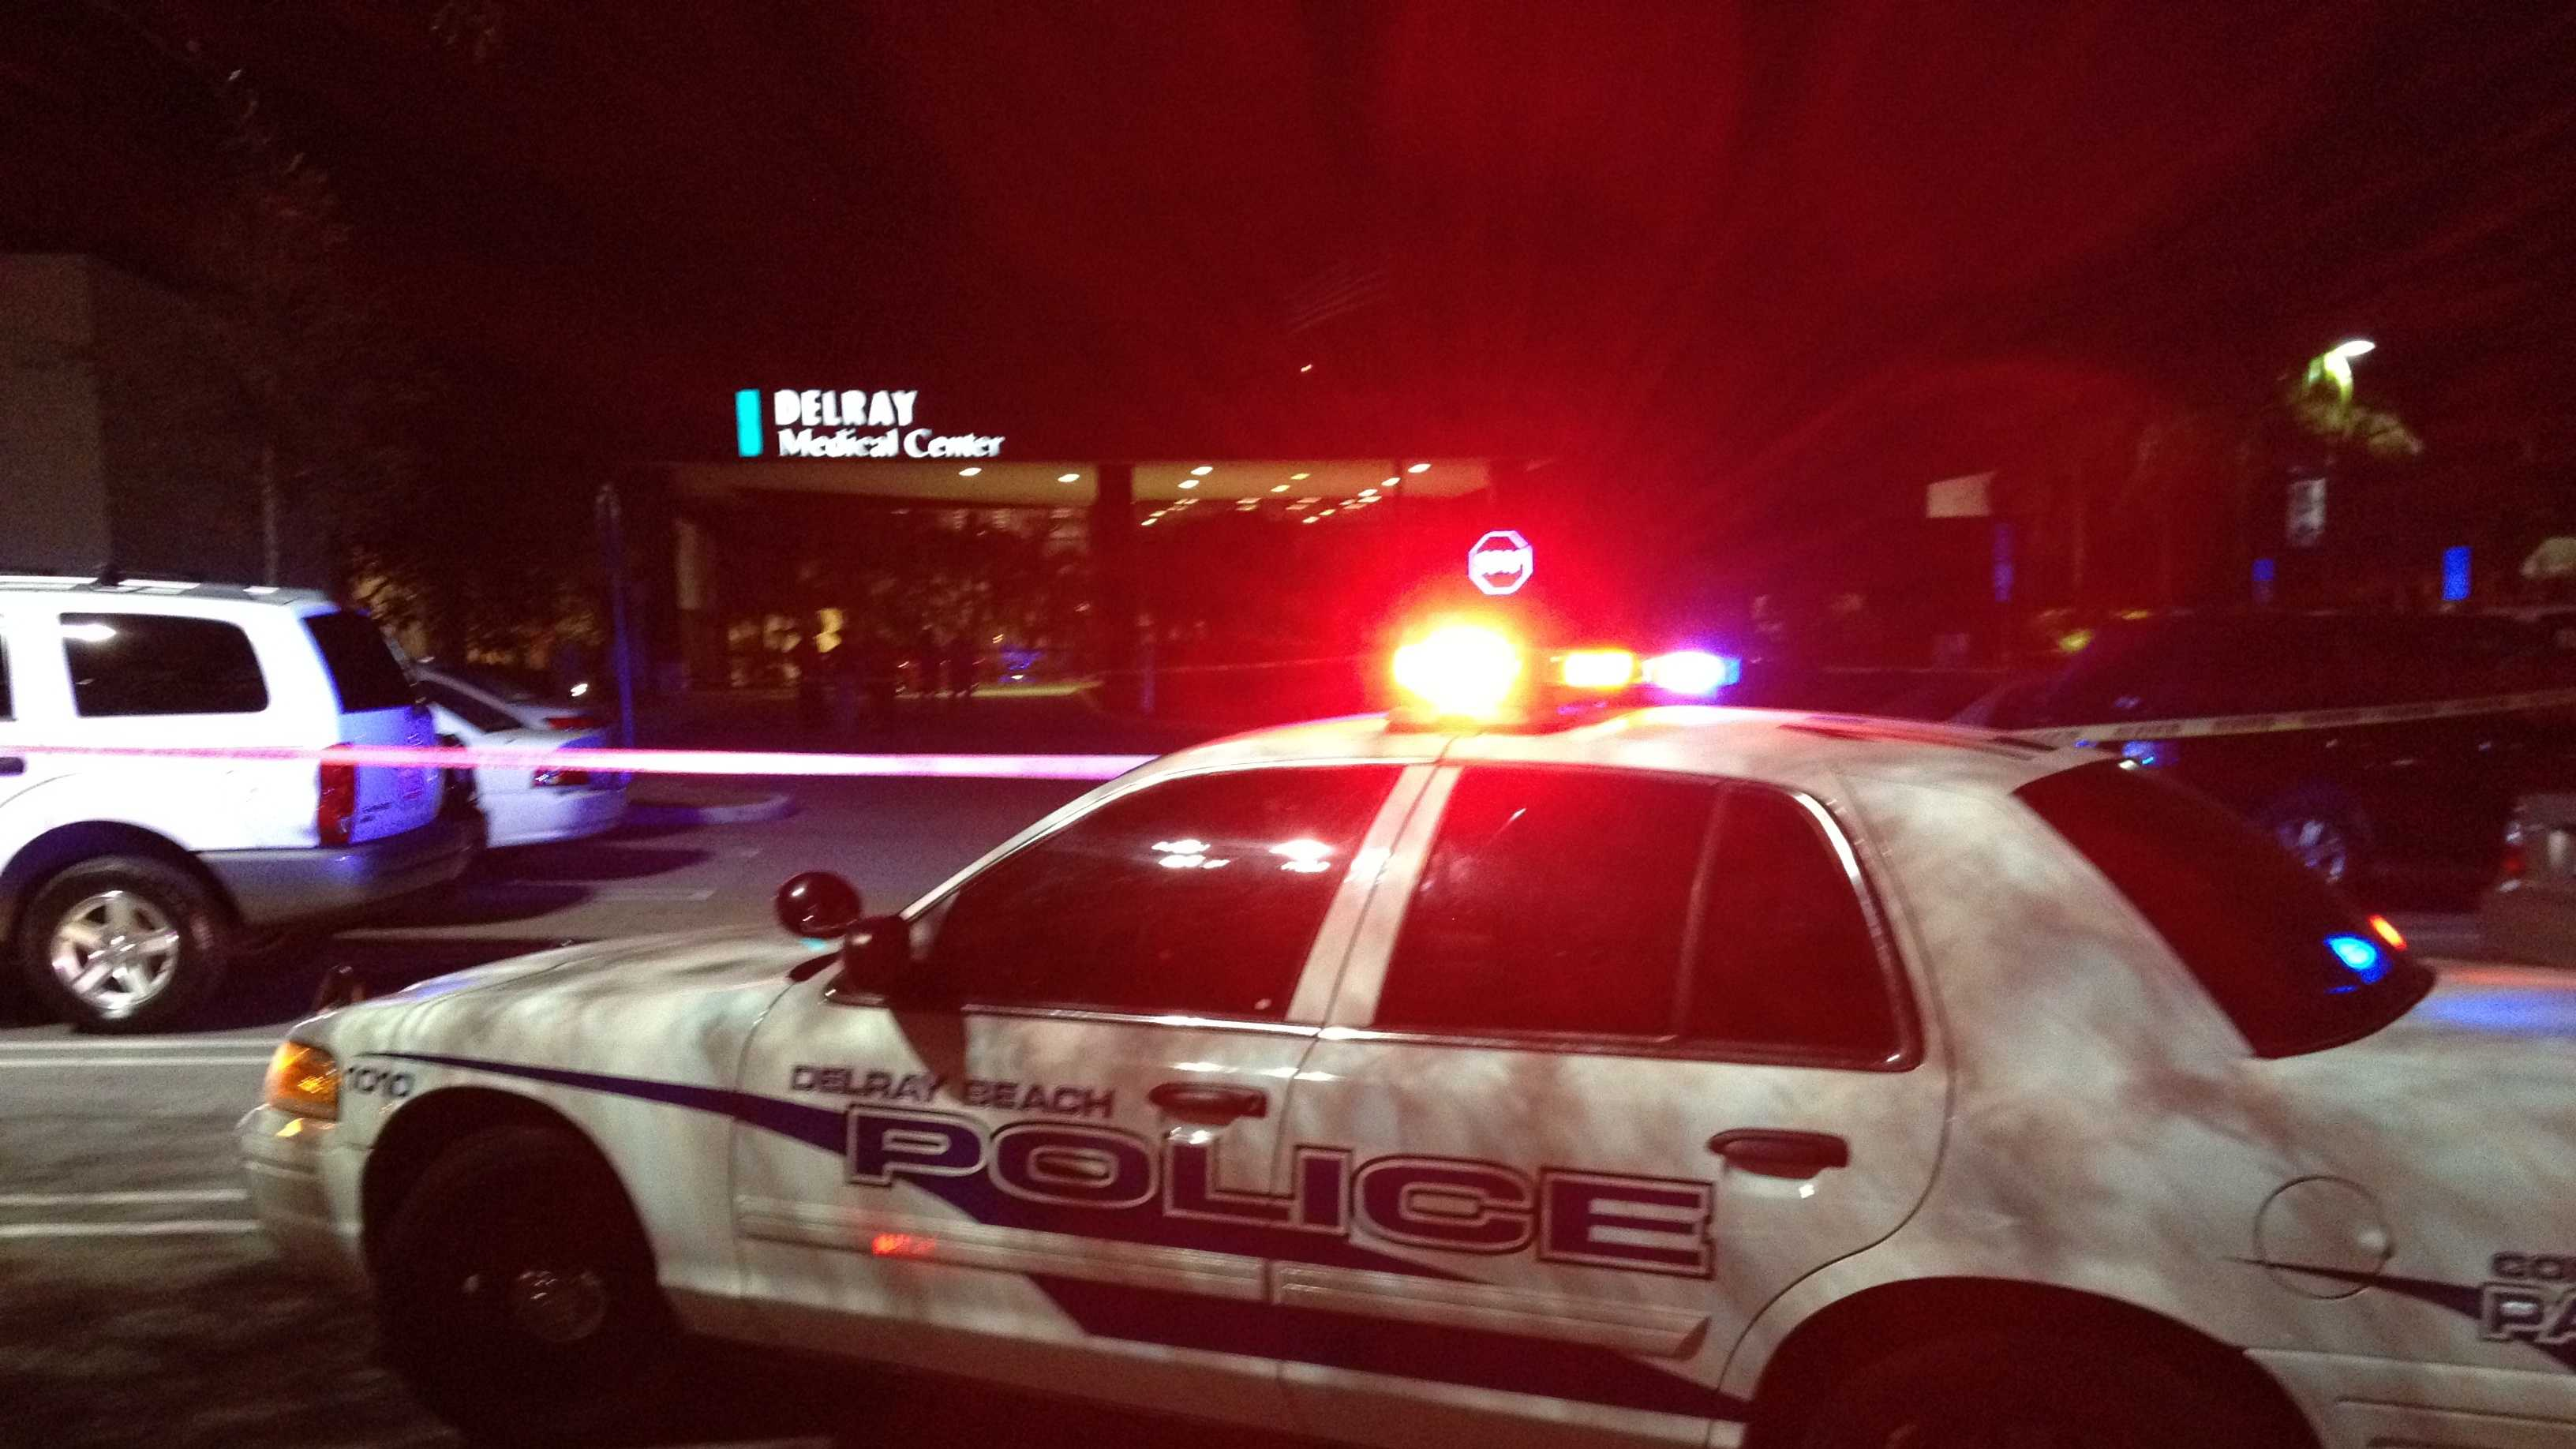 Two people were shot in the parking lot outside the Delray Medical Center on Nov. 8. (Photo: Ari Hait/WPBF)